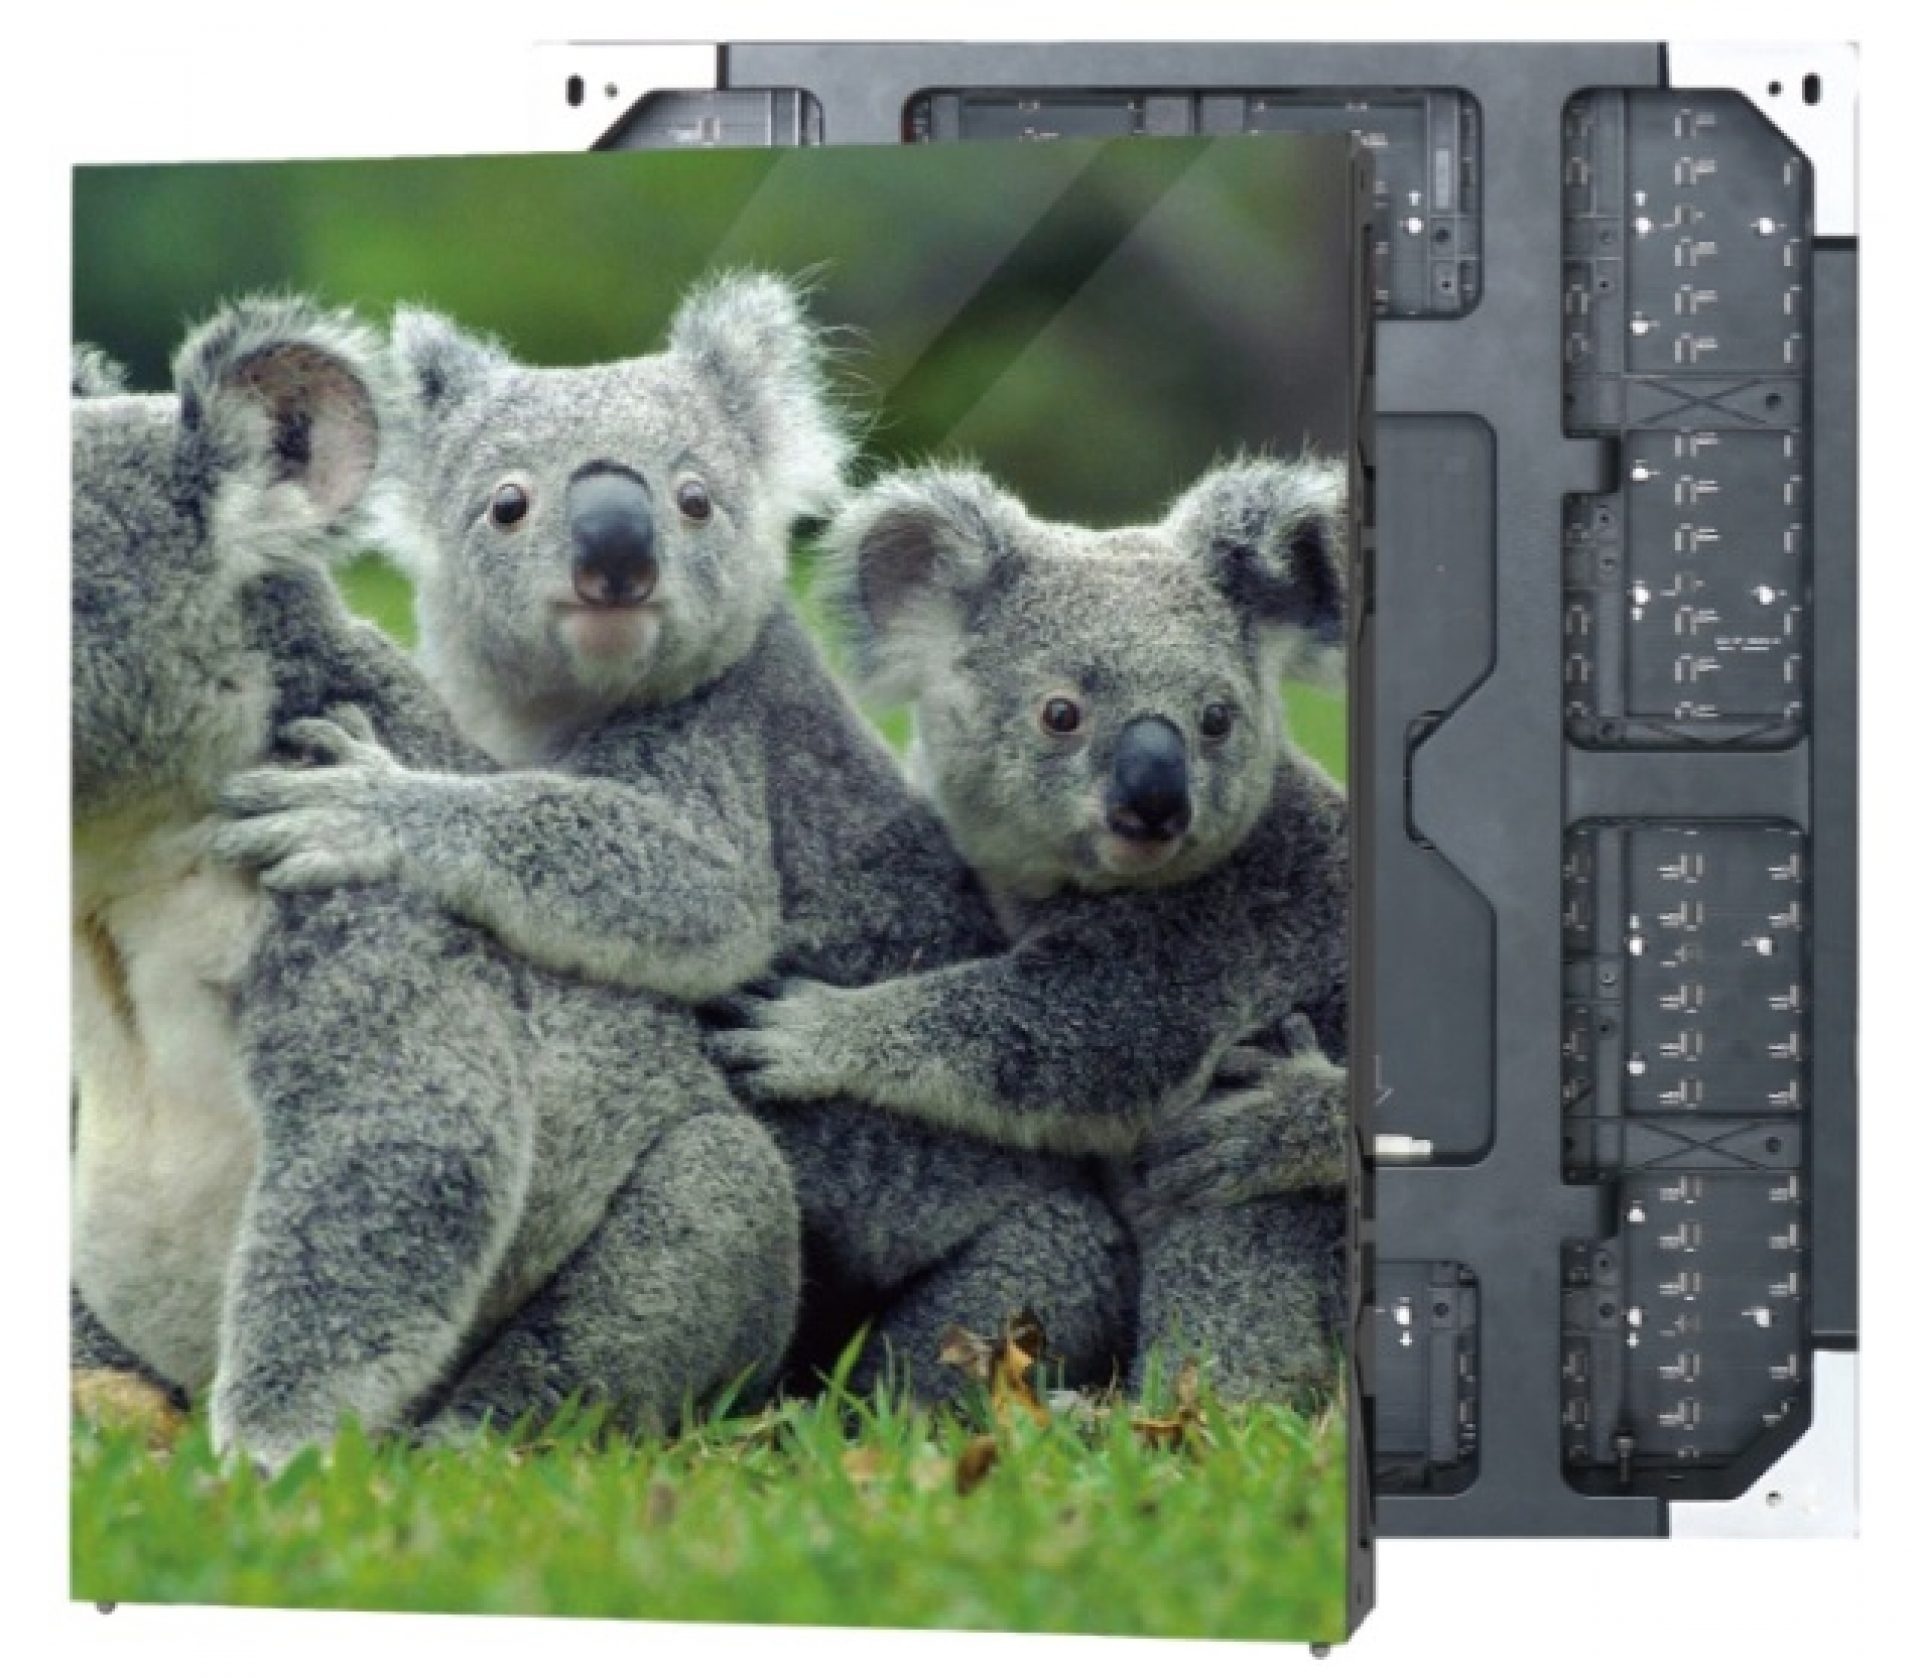 Economical LED display Solutions by Street Communication – The Koala